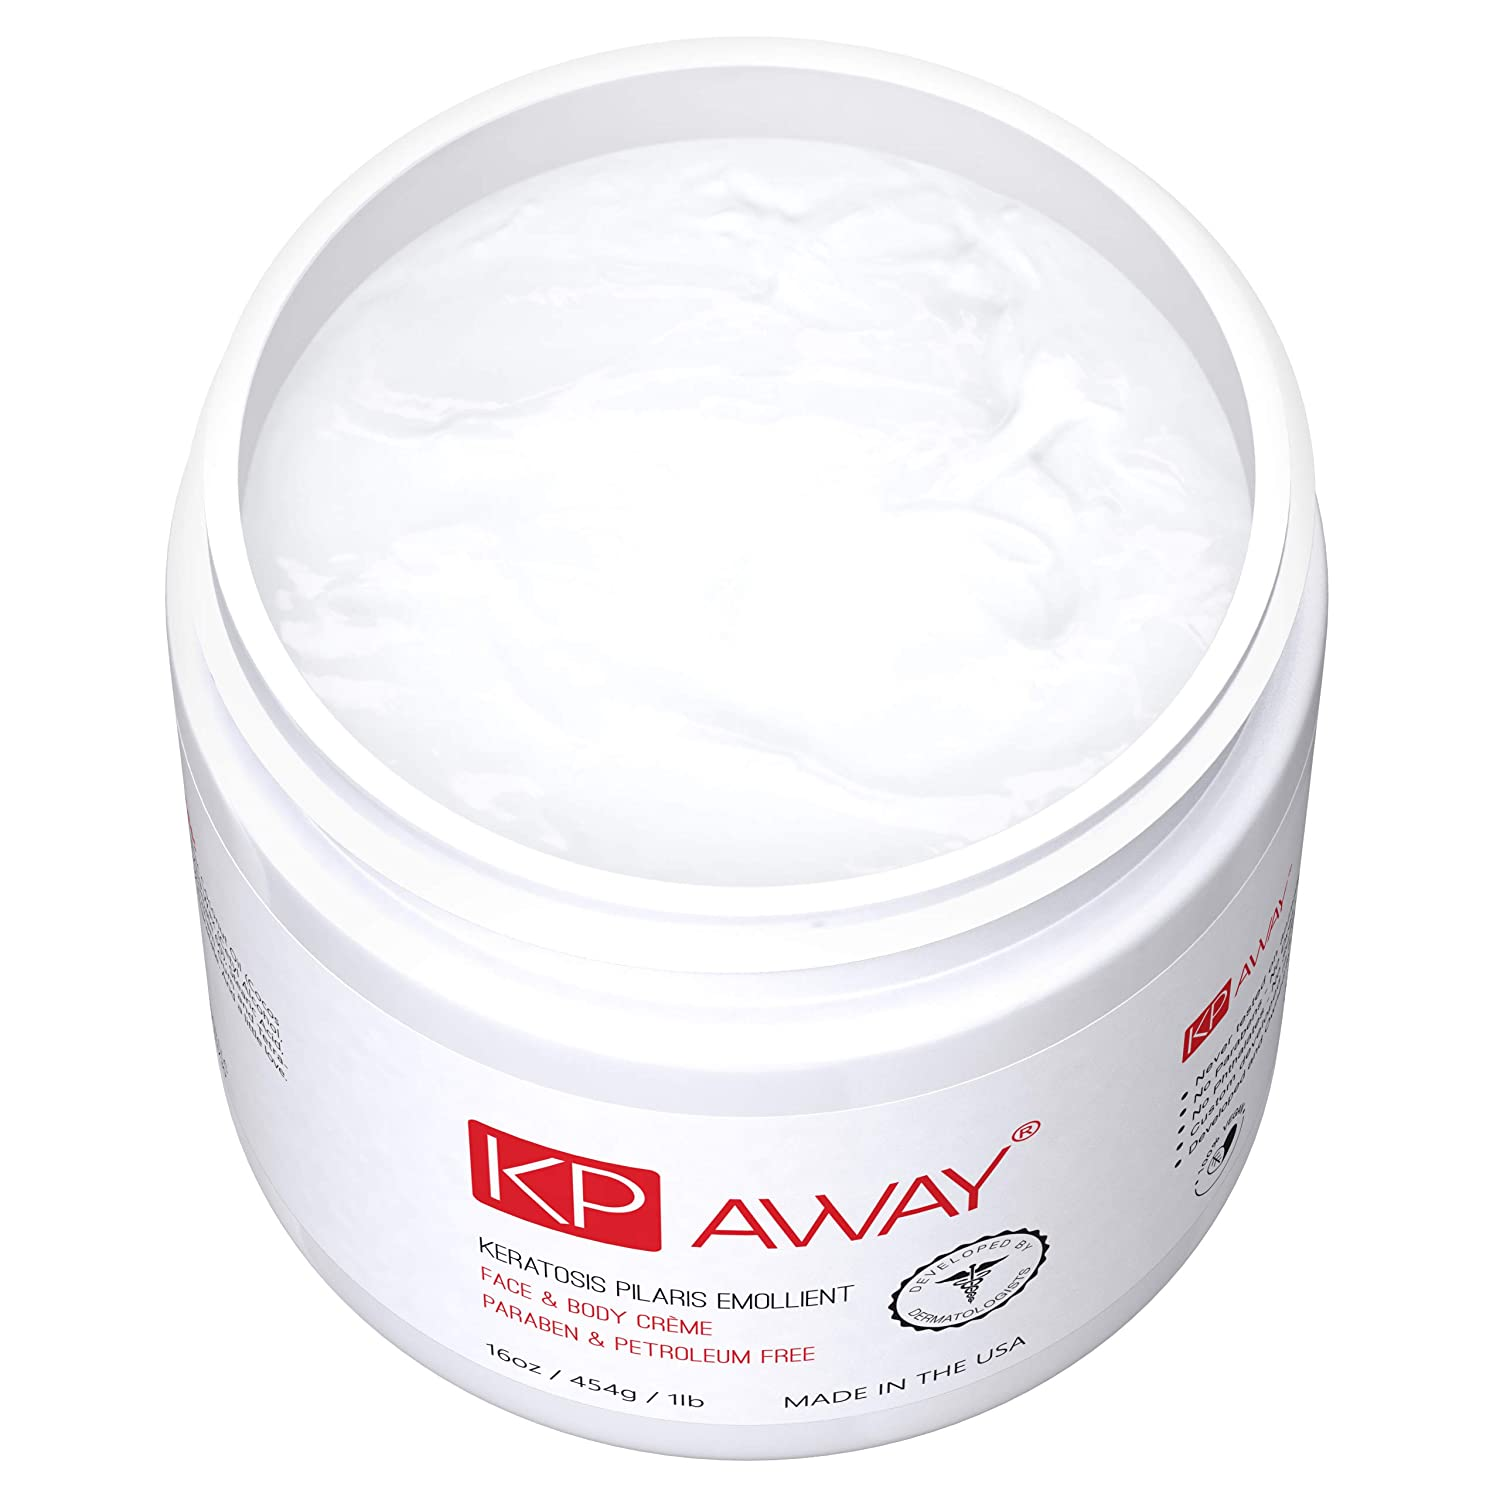 KPAway Keratosis Pilaris Treatment – Acid Free KP Cream, Lotion Made With Organic Coconut Oil, Baby Friendly, Paraben Free, For Rough Bumpy Skin 16oz